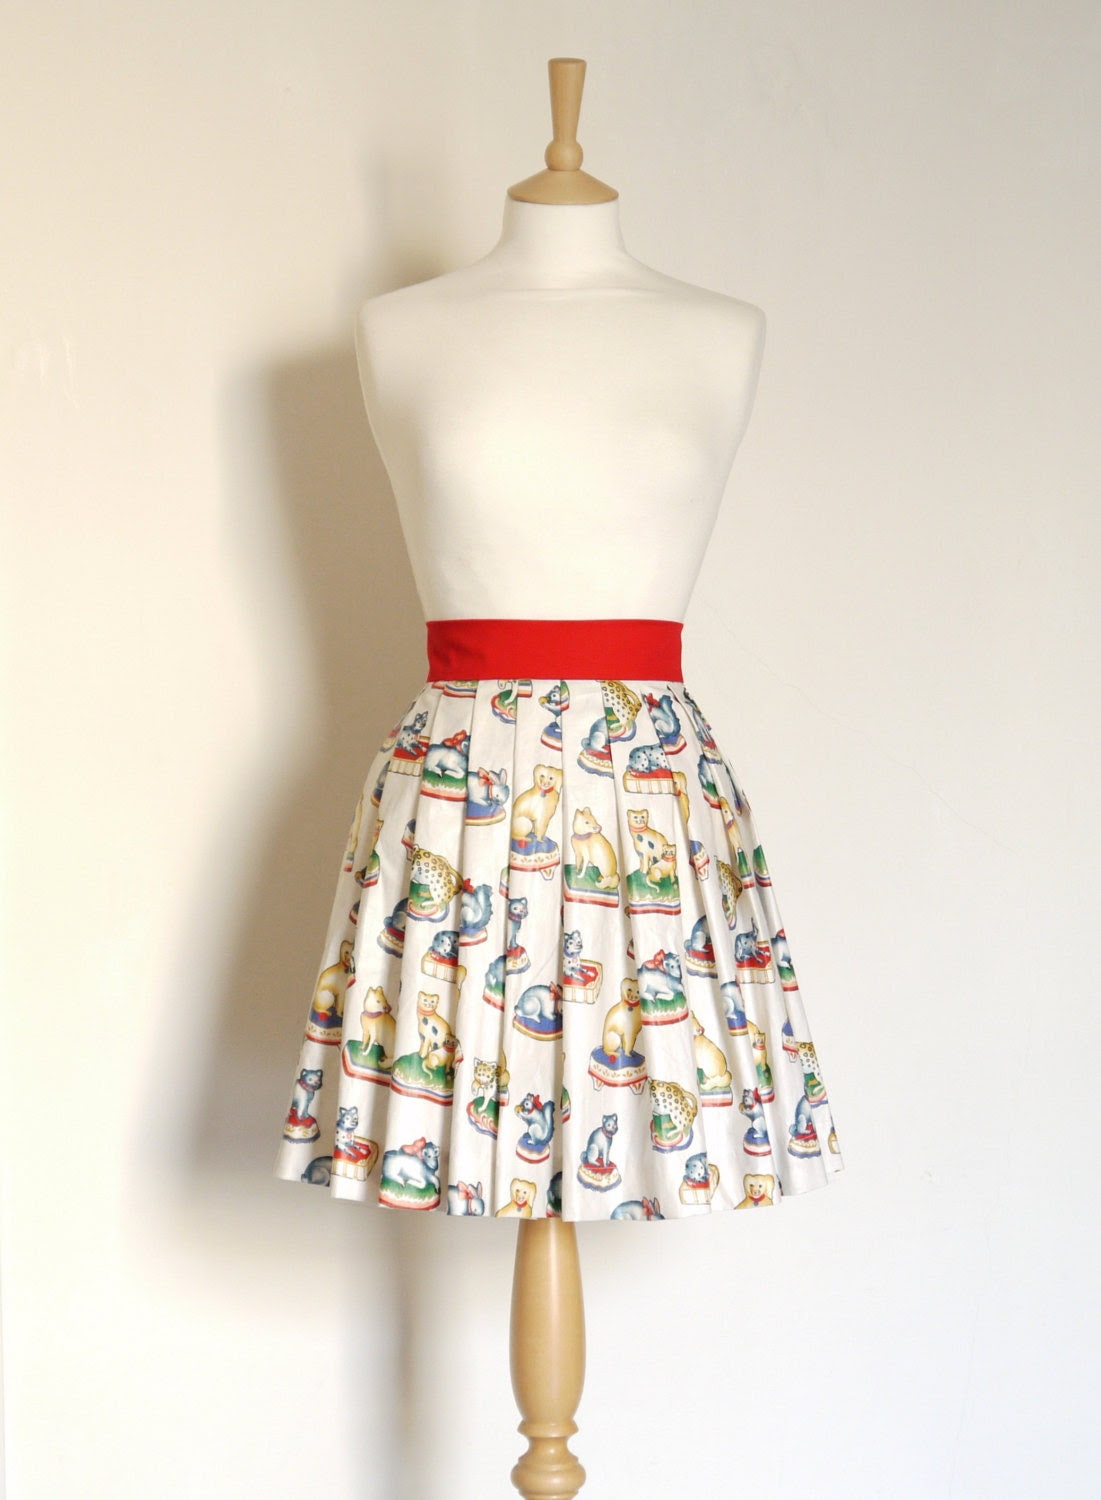 Mini Menagerie Pleated Skirt - Made by Dig For Victory - FREE SHIPPING worldwide